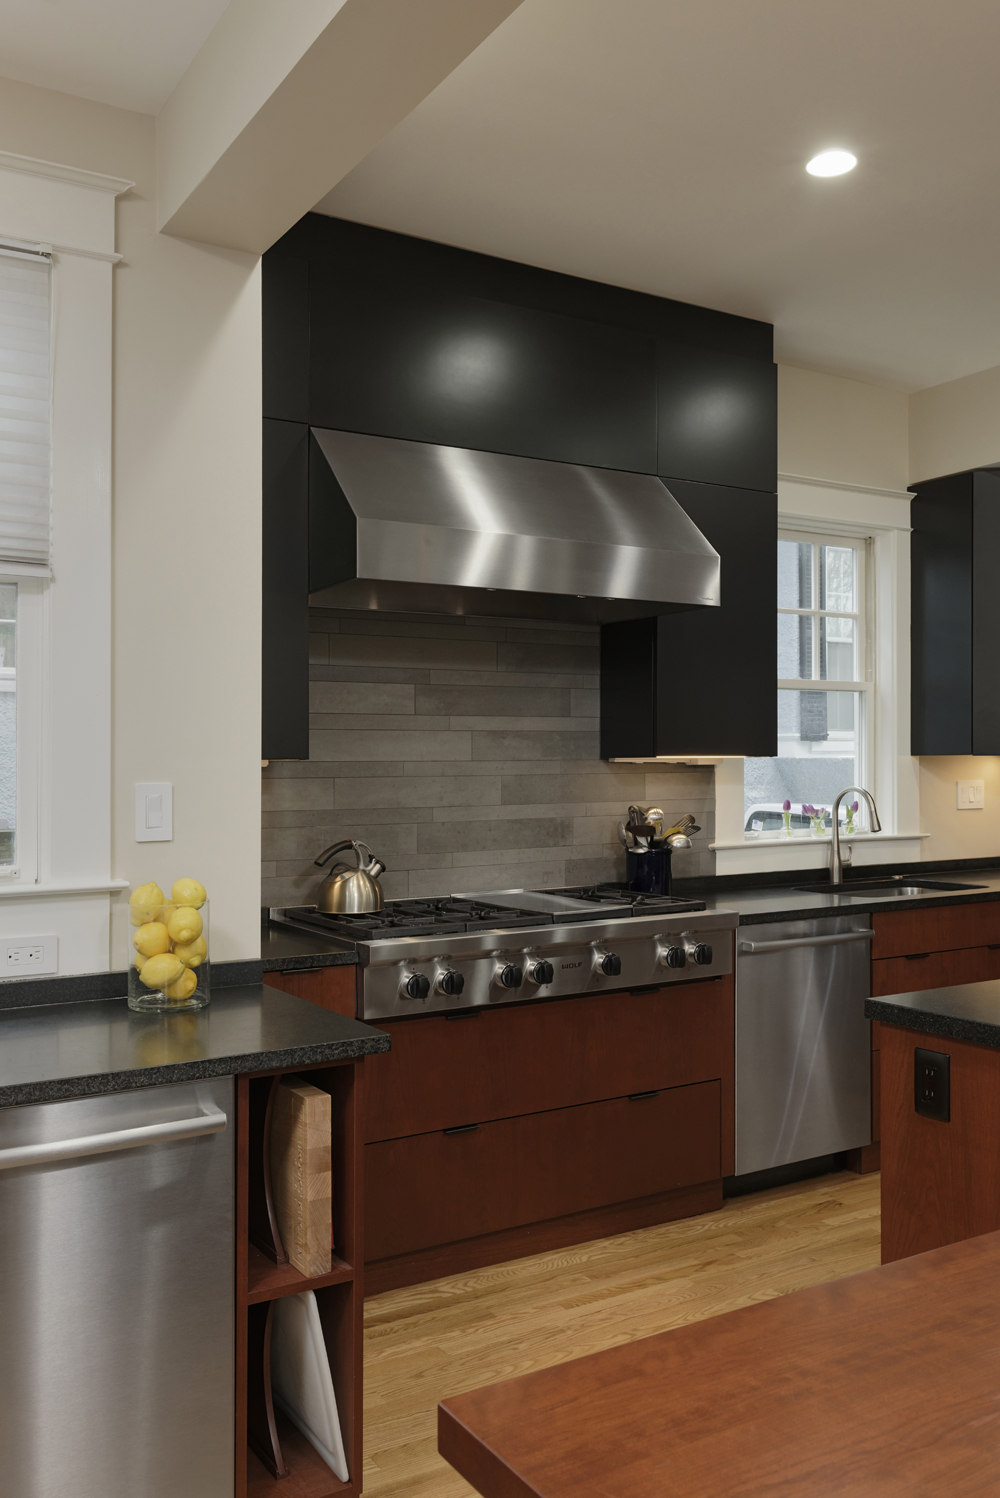 Cleveland park dc kosher kitchen renovation bowa for Kosher kitchen design